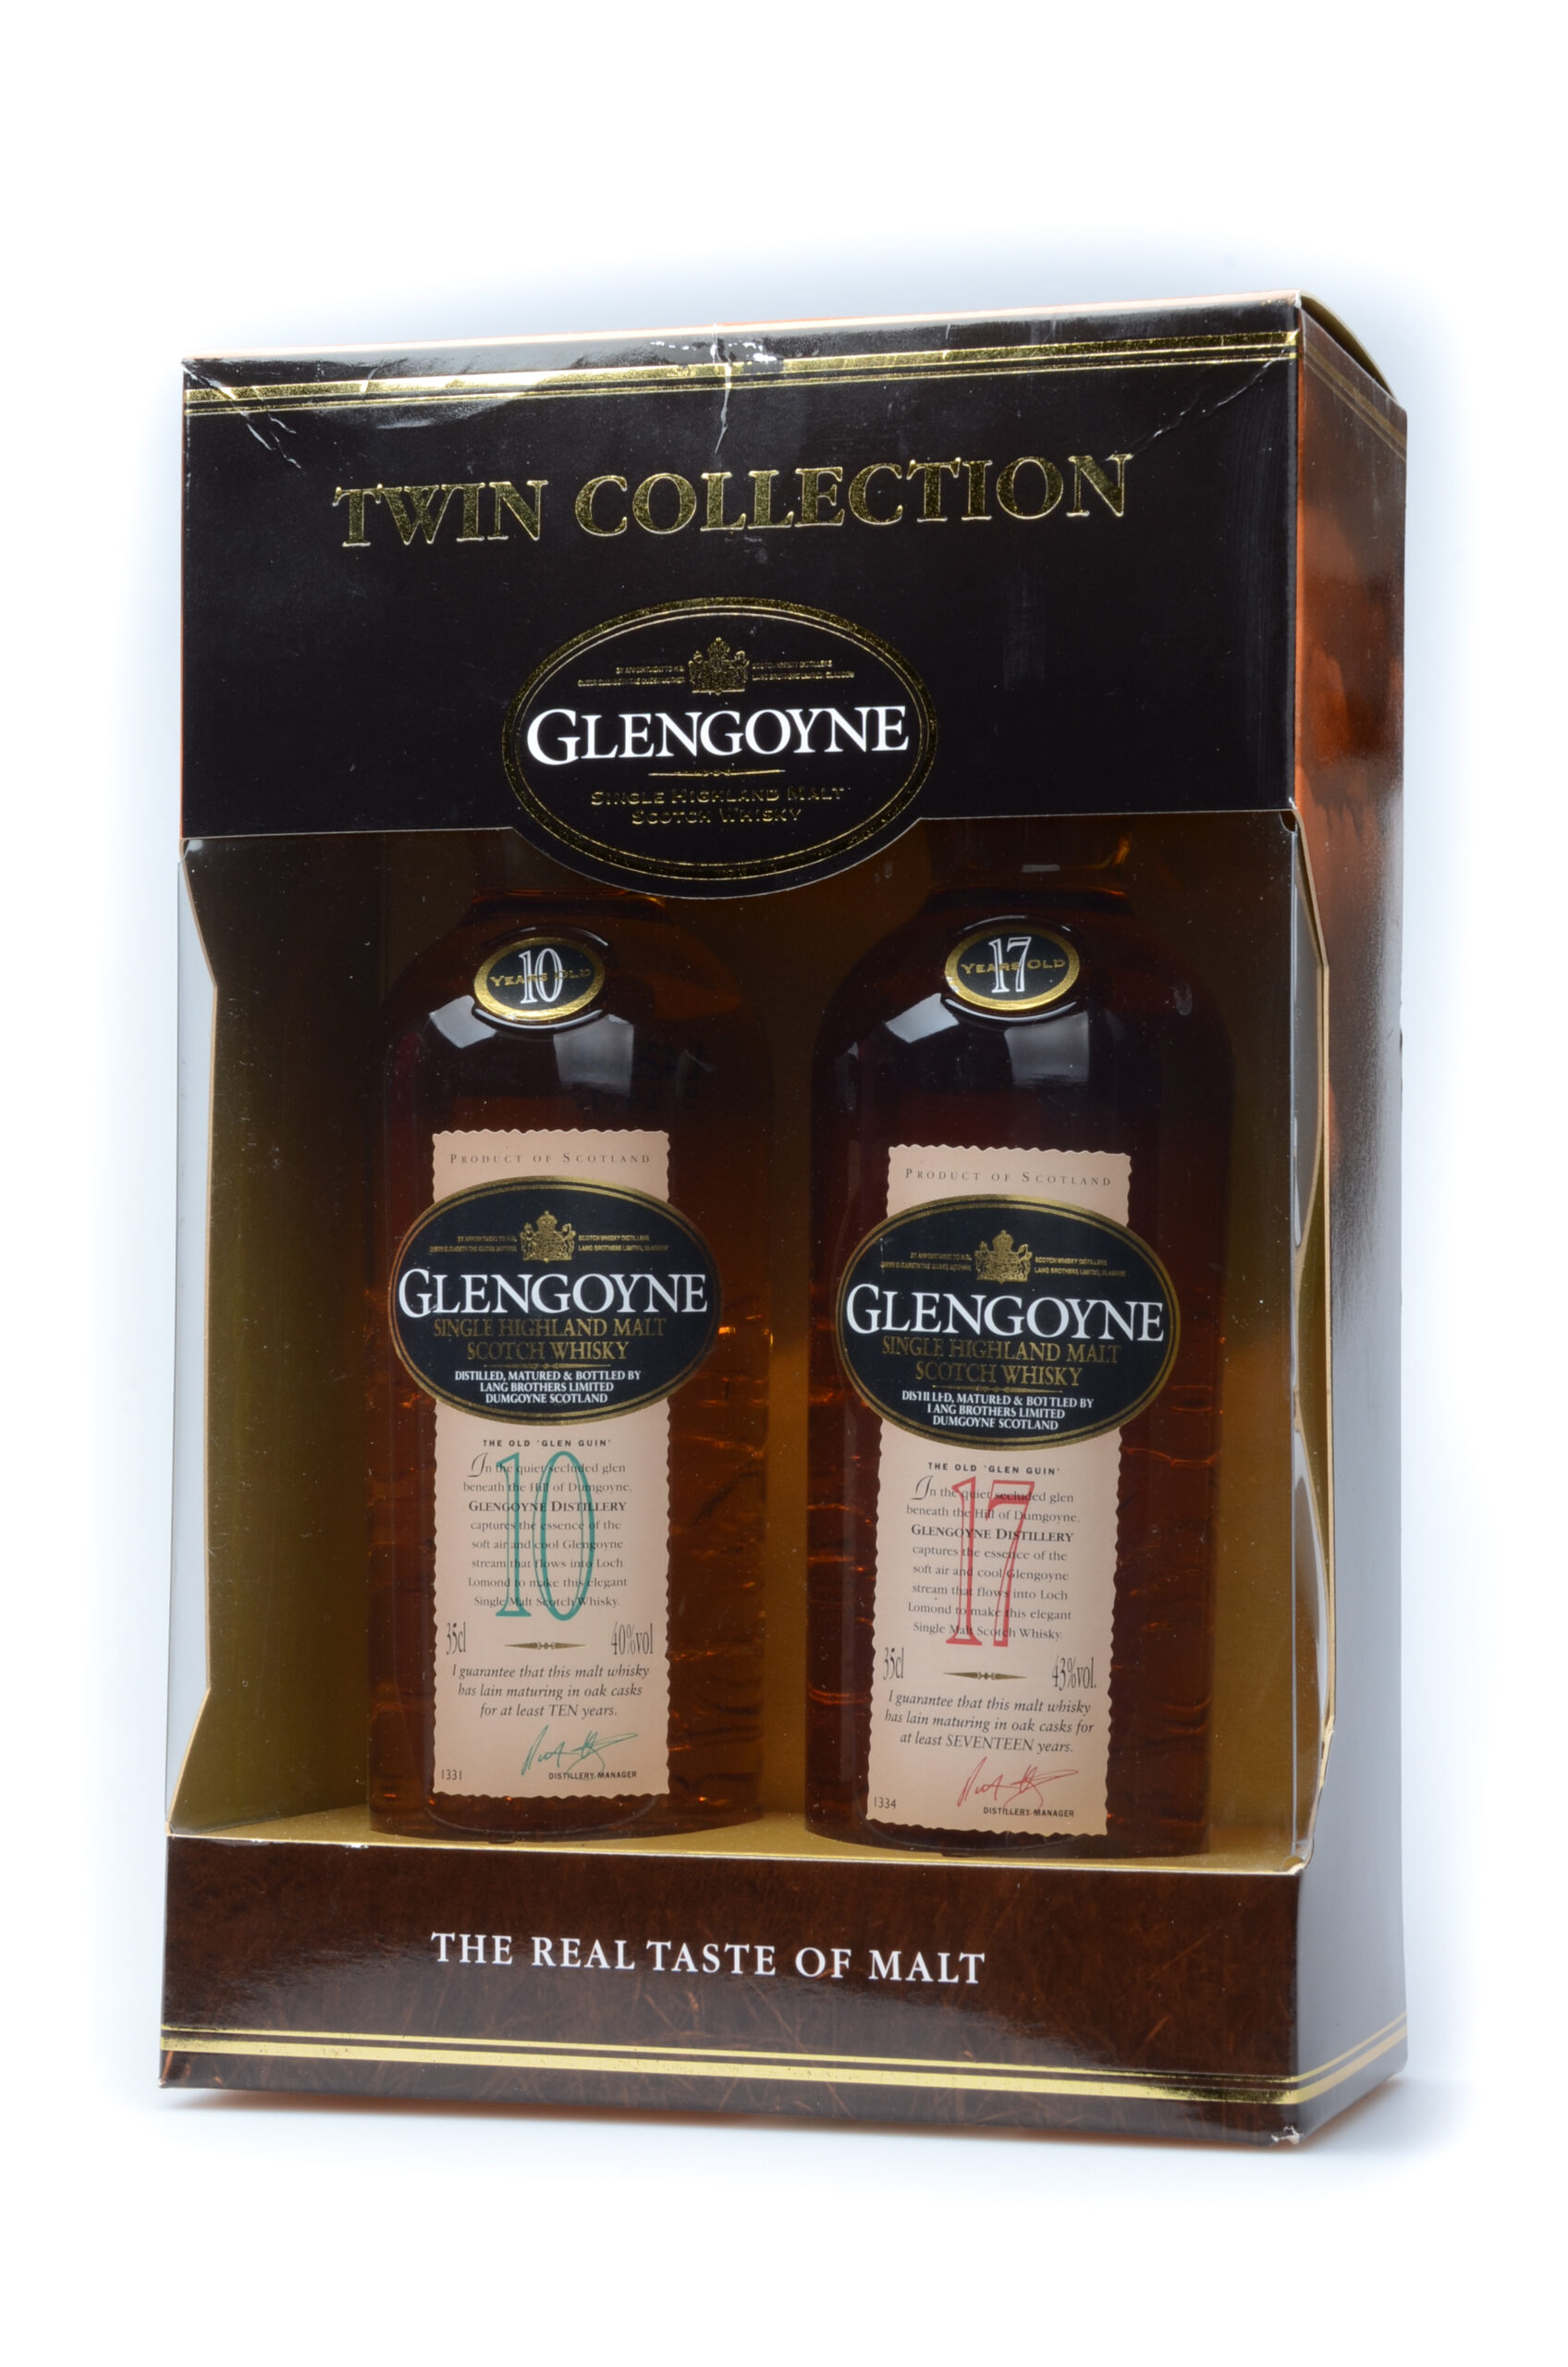 Glengoyne Twin Collection 10 and 17